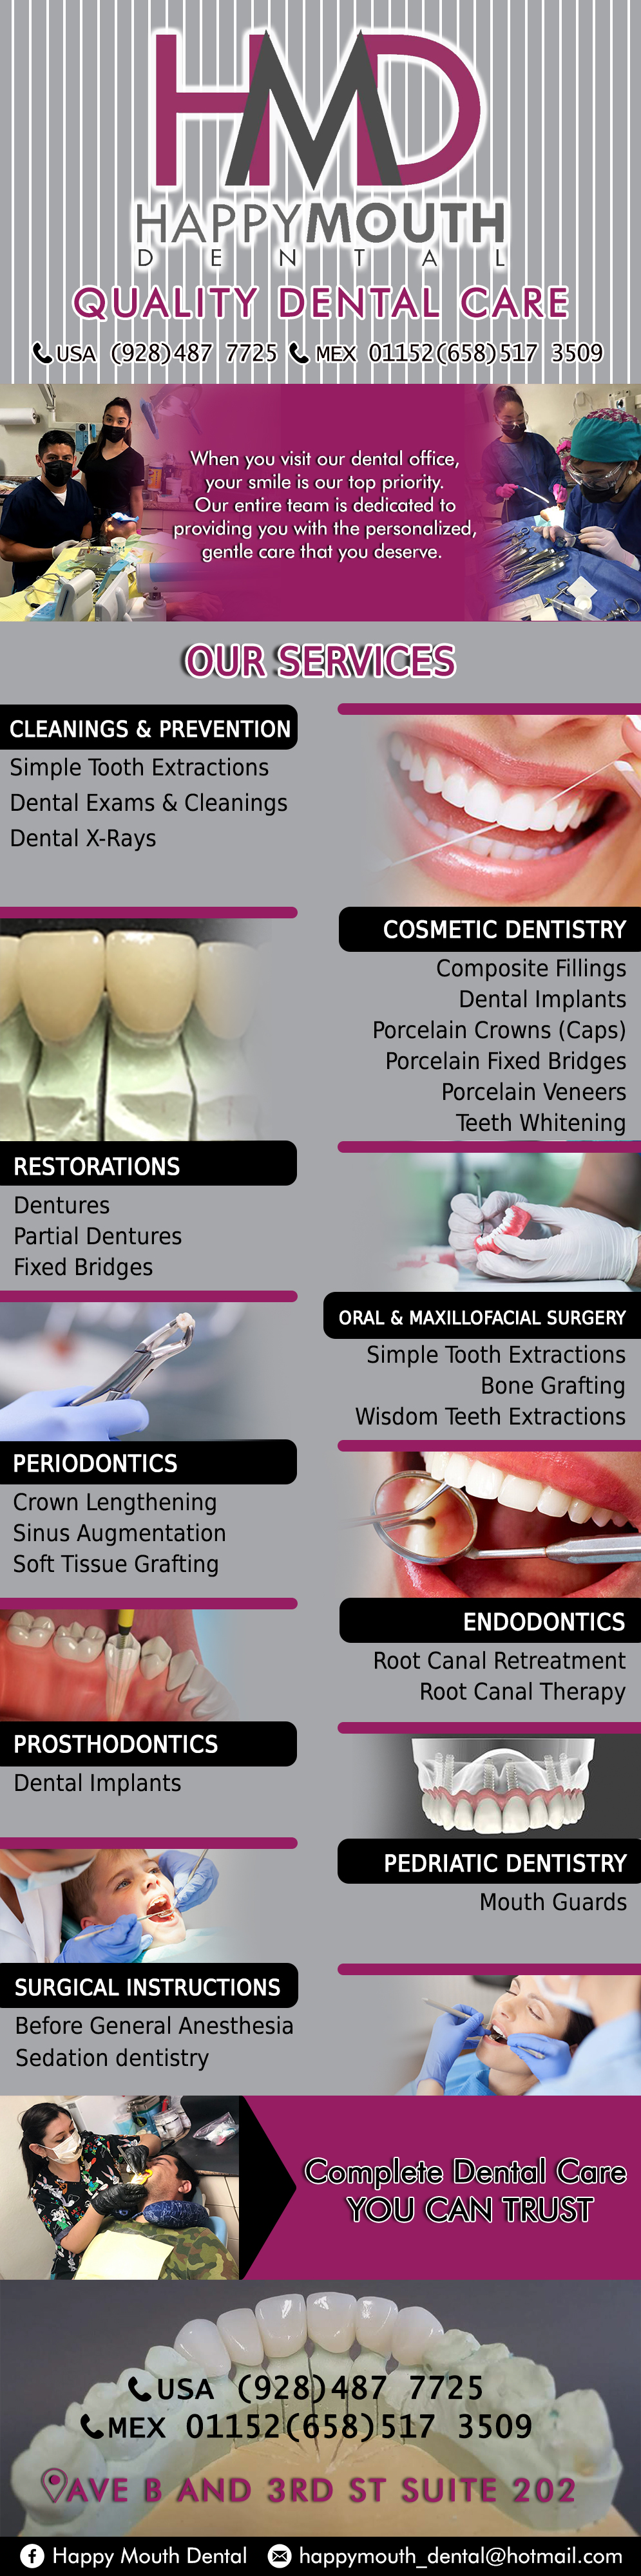 Happy Mouth Dental in Algodones  in Algodones  THE CARE YOUR MOUTH DESERVES  dentist  implants general dentistry